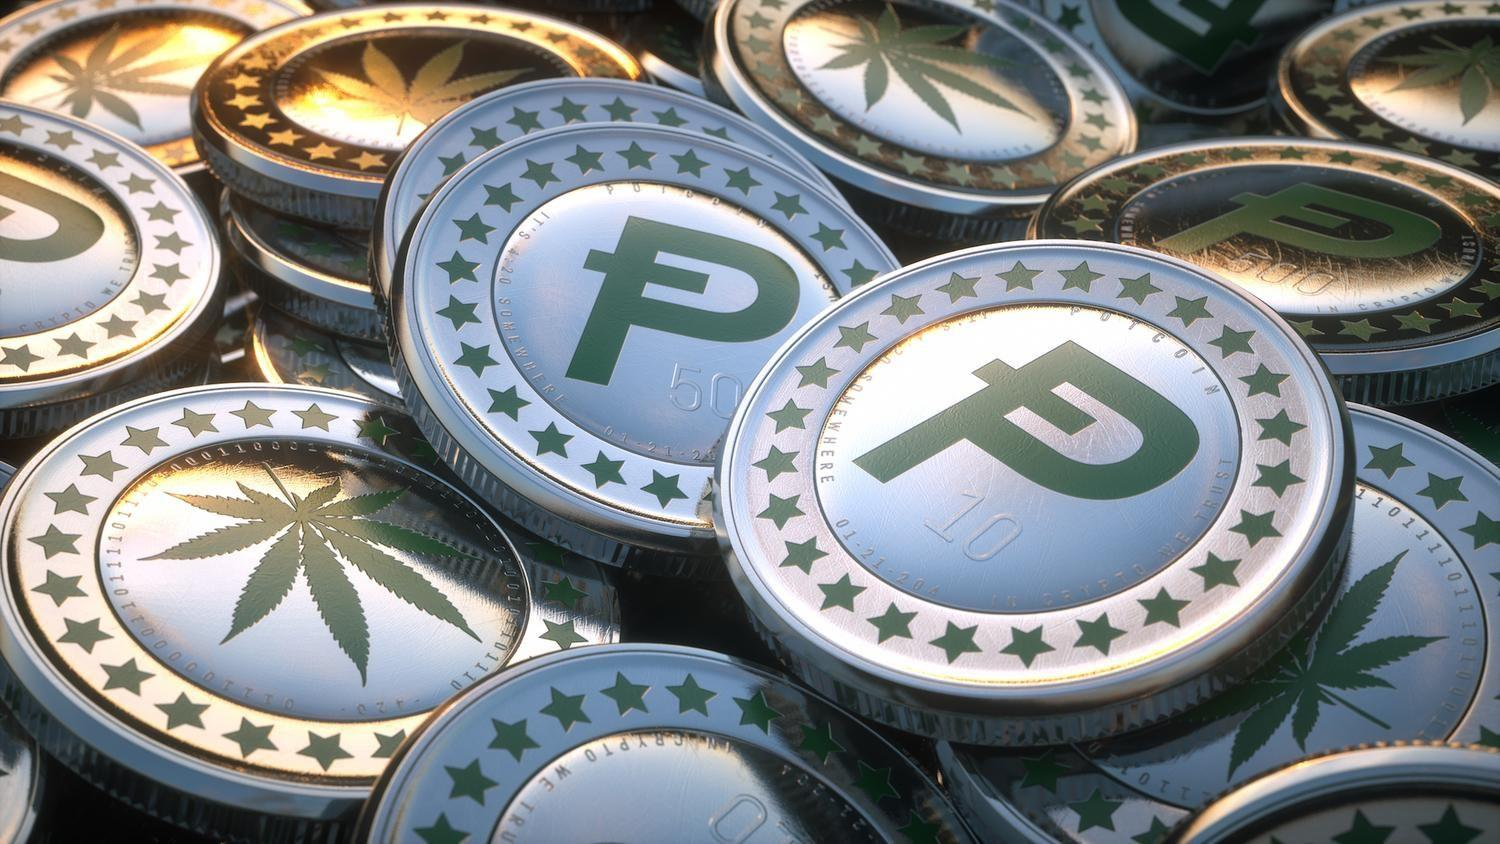 What is potcoin? Marijuana cryptocurrency funds Dennis Rodman's trip to North Korea summit